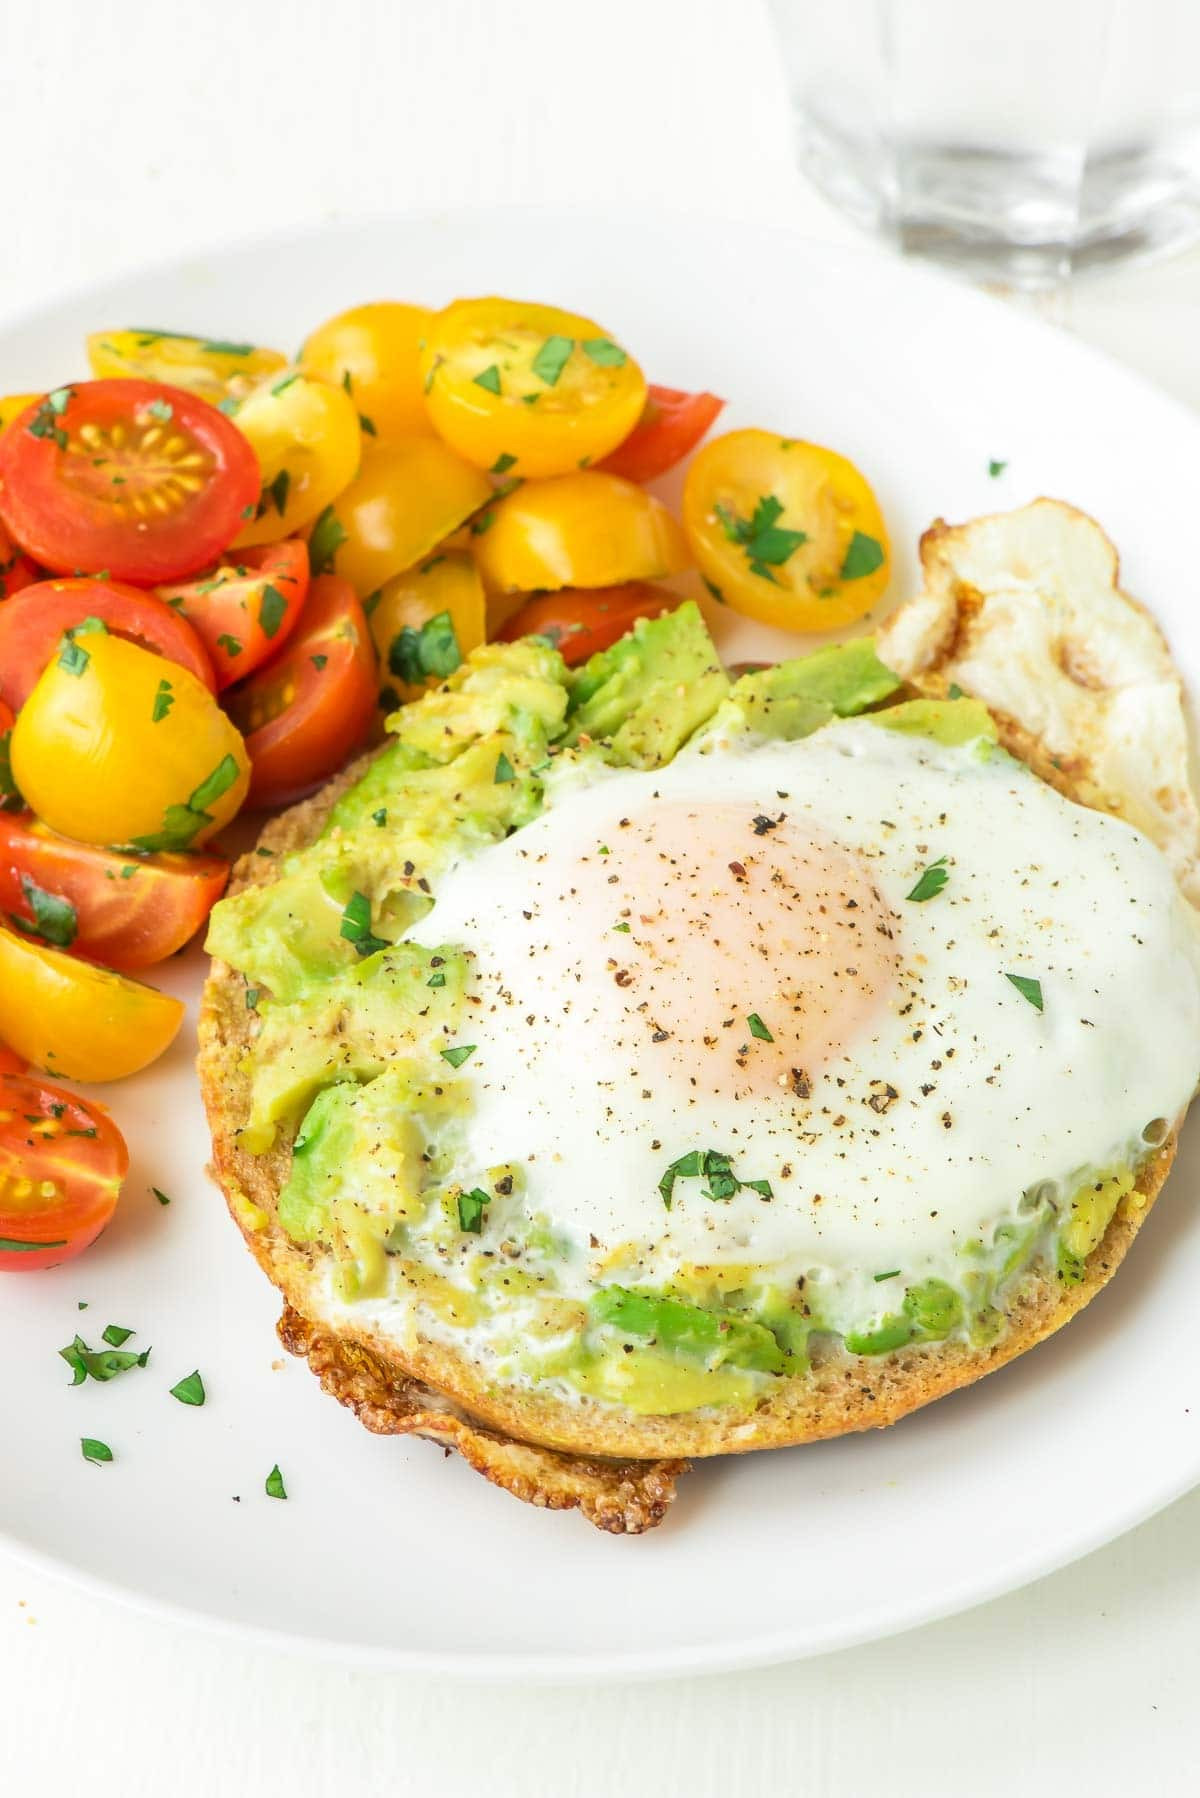 Healthy Bagel Breakfast  Bagel Egg in a Hole with Smashed Avocado